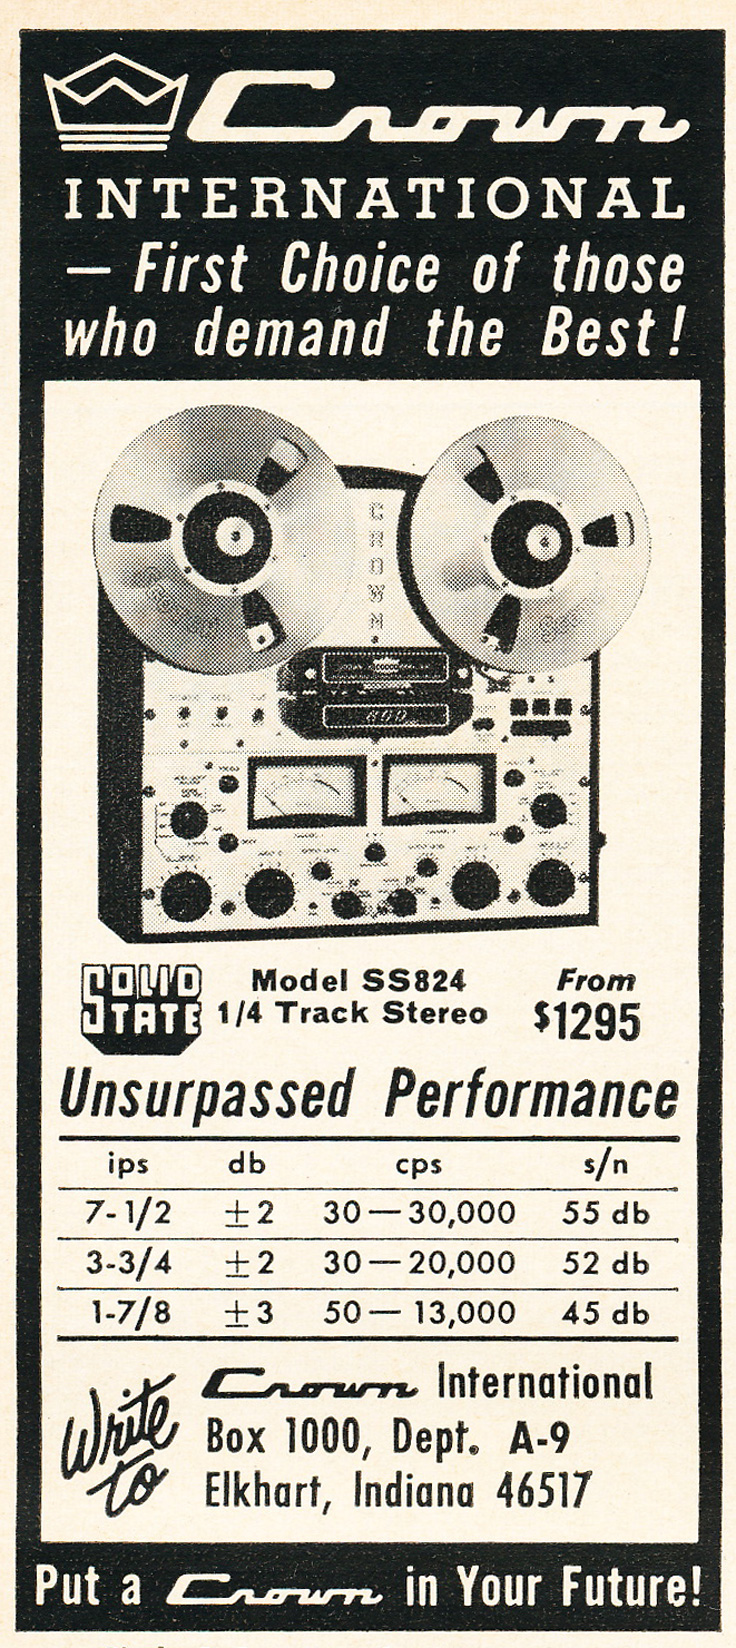 1965 Crown reel to reel tape recorder ad in the Reel2ReelTexas.com vintage recording collection